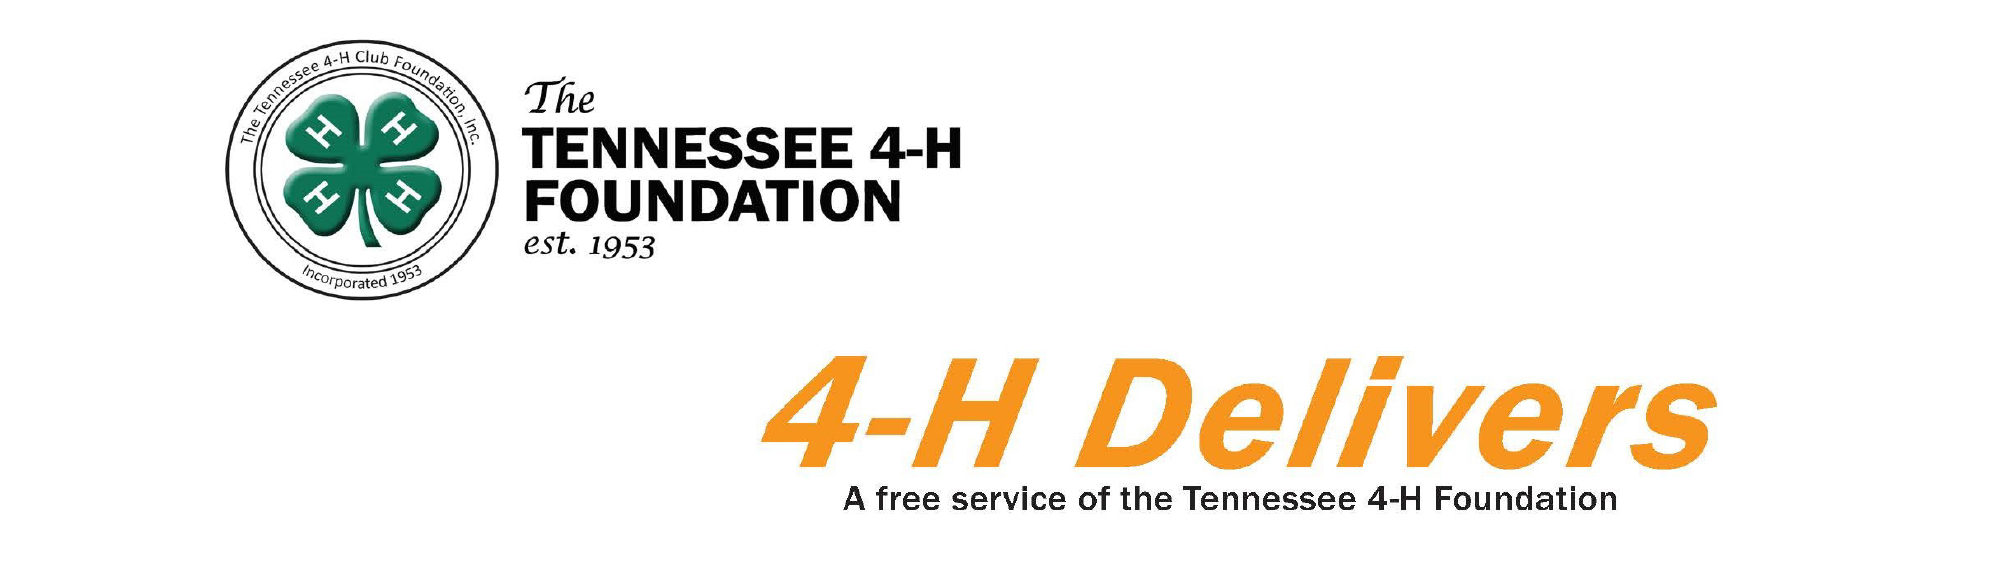 The Tennessee 4-H Foundation, est. 1953 - 4-H Delivers, A Free Service of the Tennessee 4-H Foundation